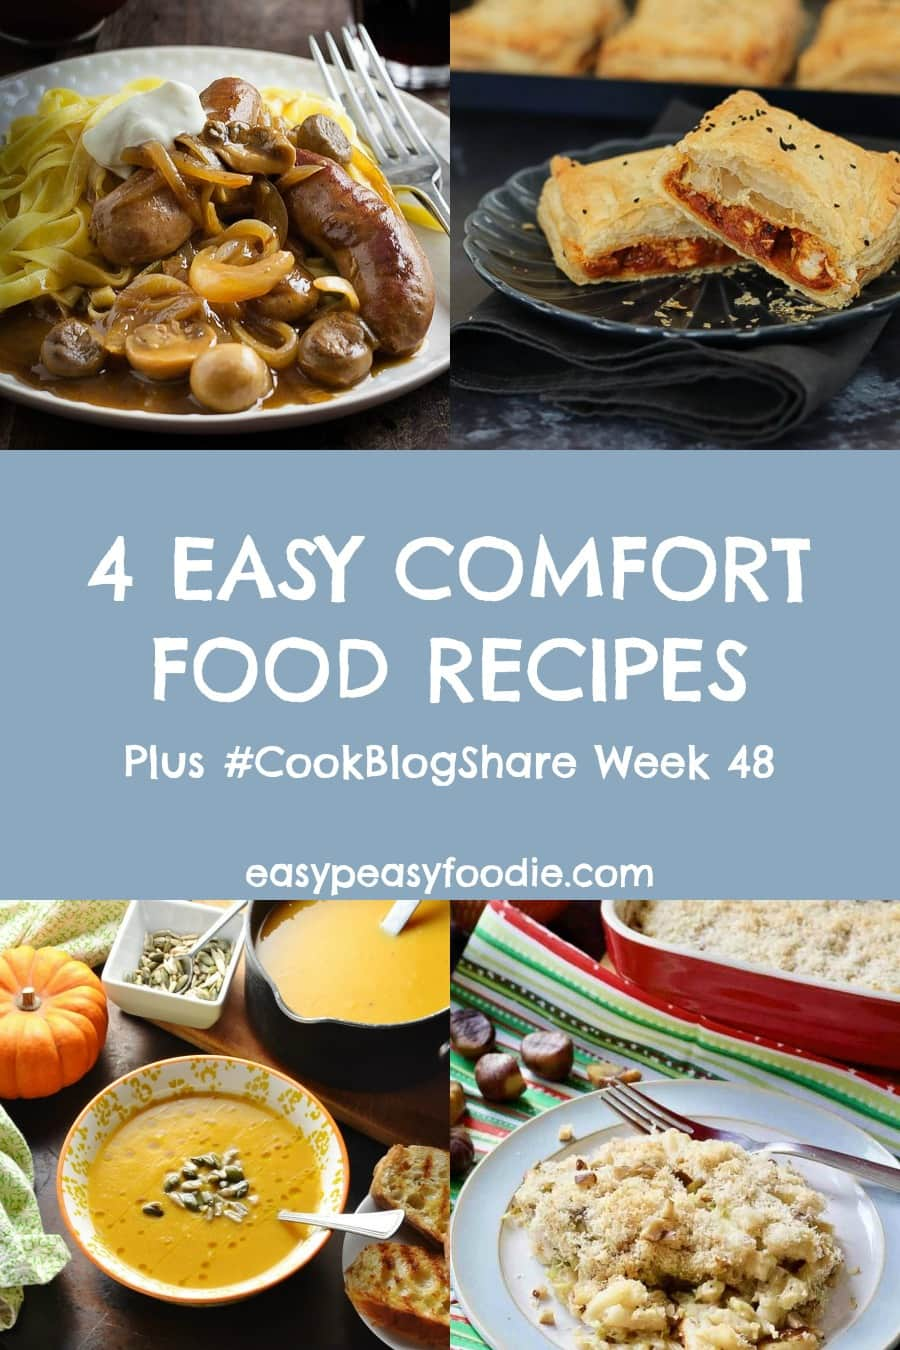 4 Easy Comfort Food Recipes And Cookblogshare Week 48 Easy Peasy